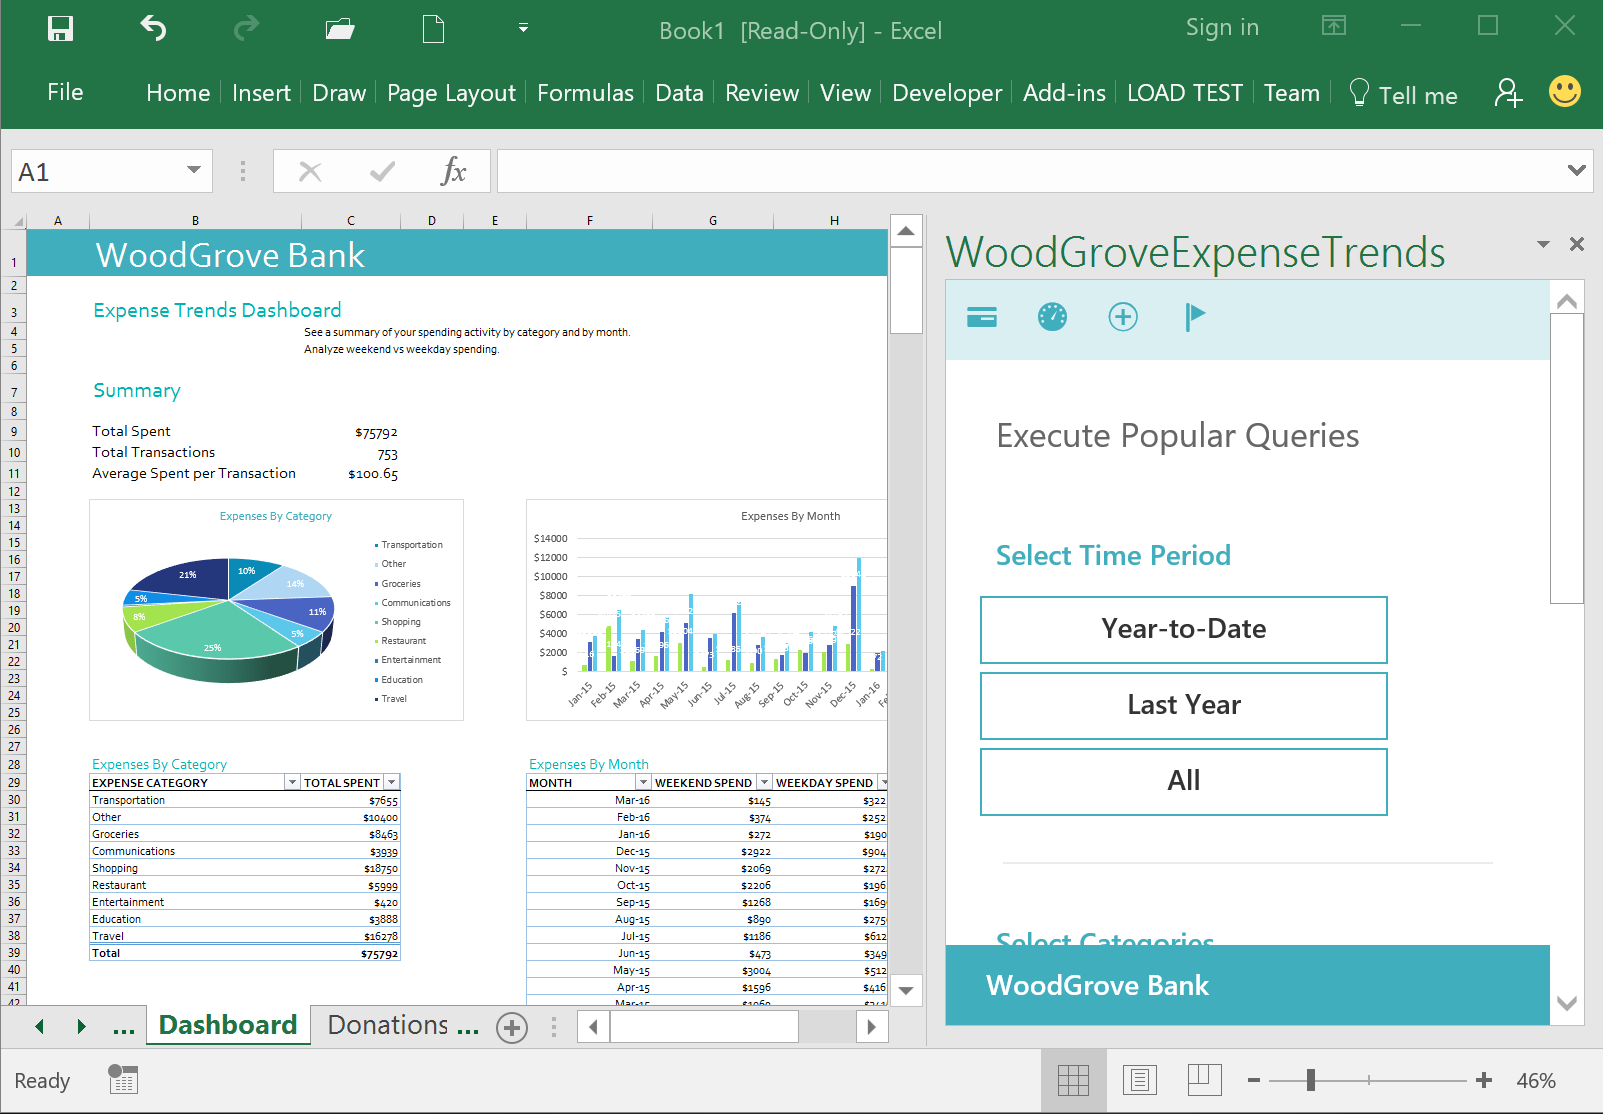 WoodGrove Bank Expense Trends Add-in - Dashboard